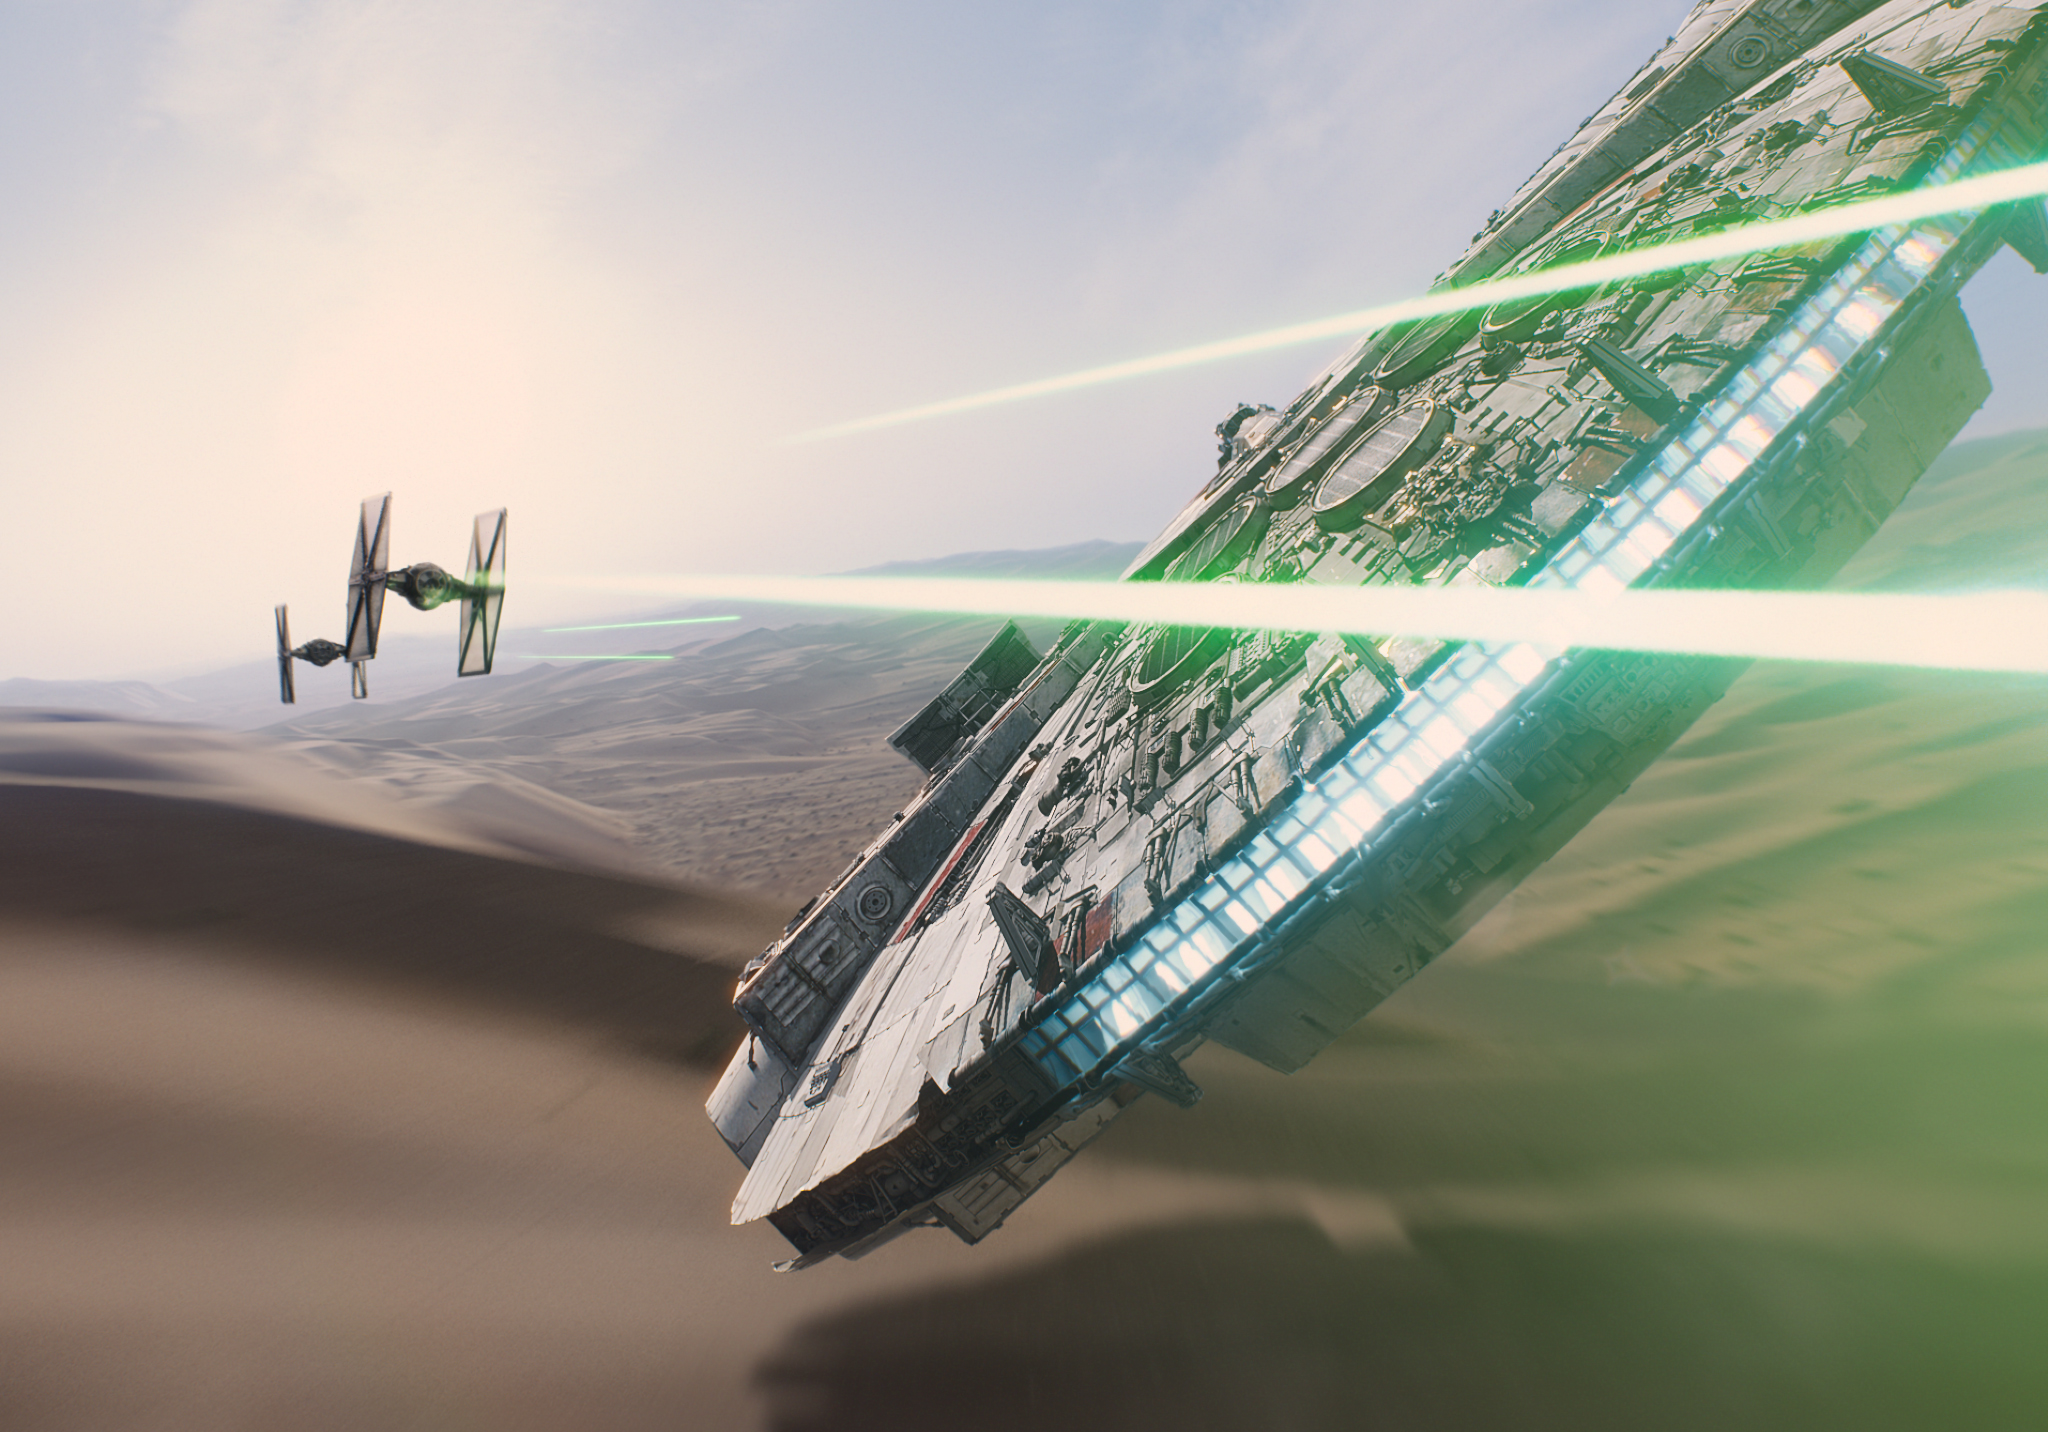 A scene from  Star Wars: The Force Awakens,  expected in theaters on Dec. 18, 2015.